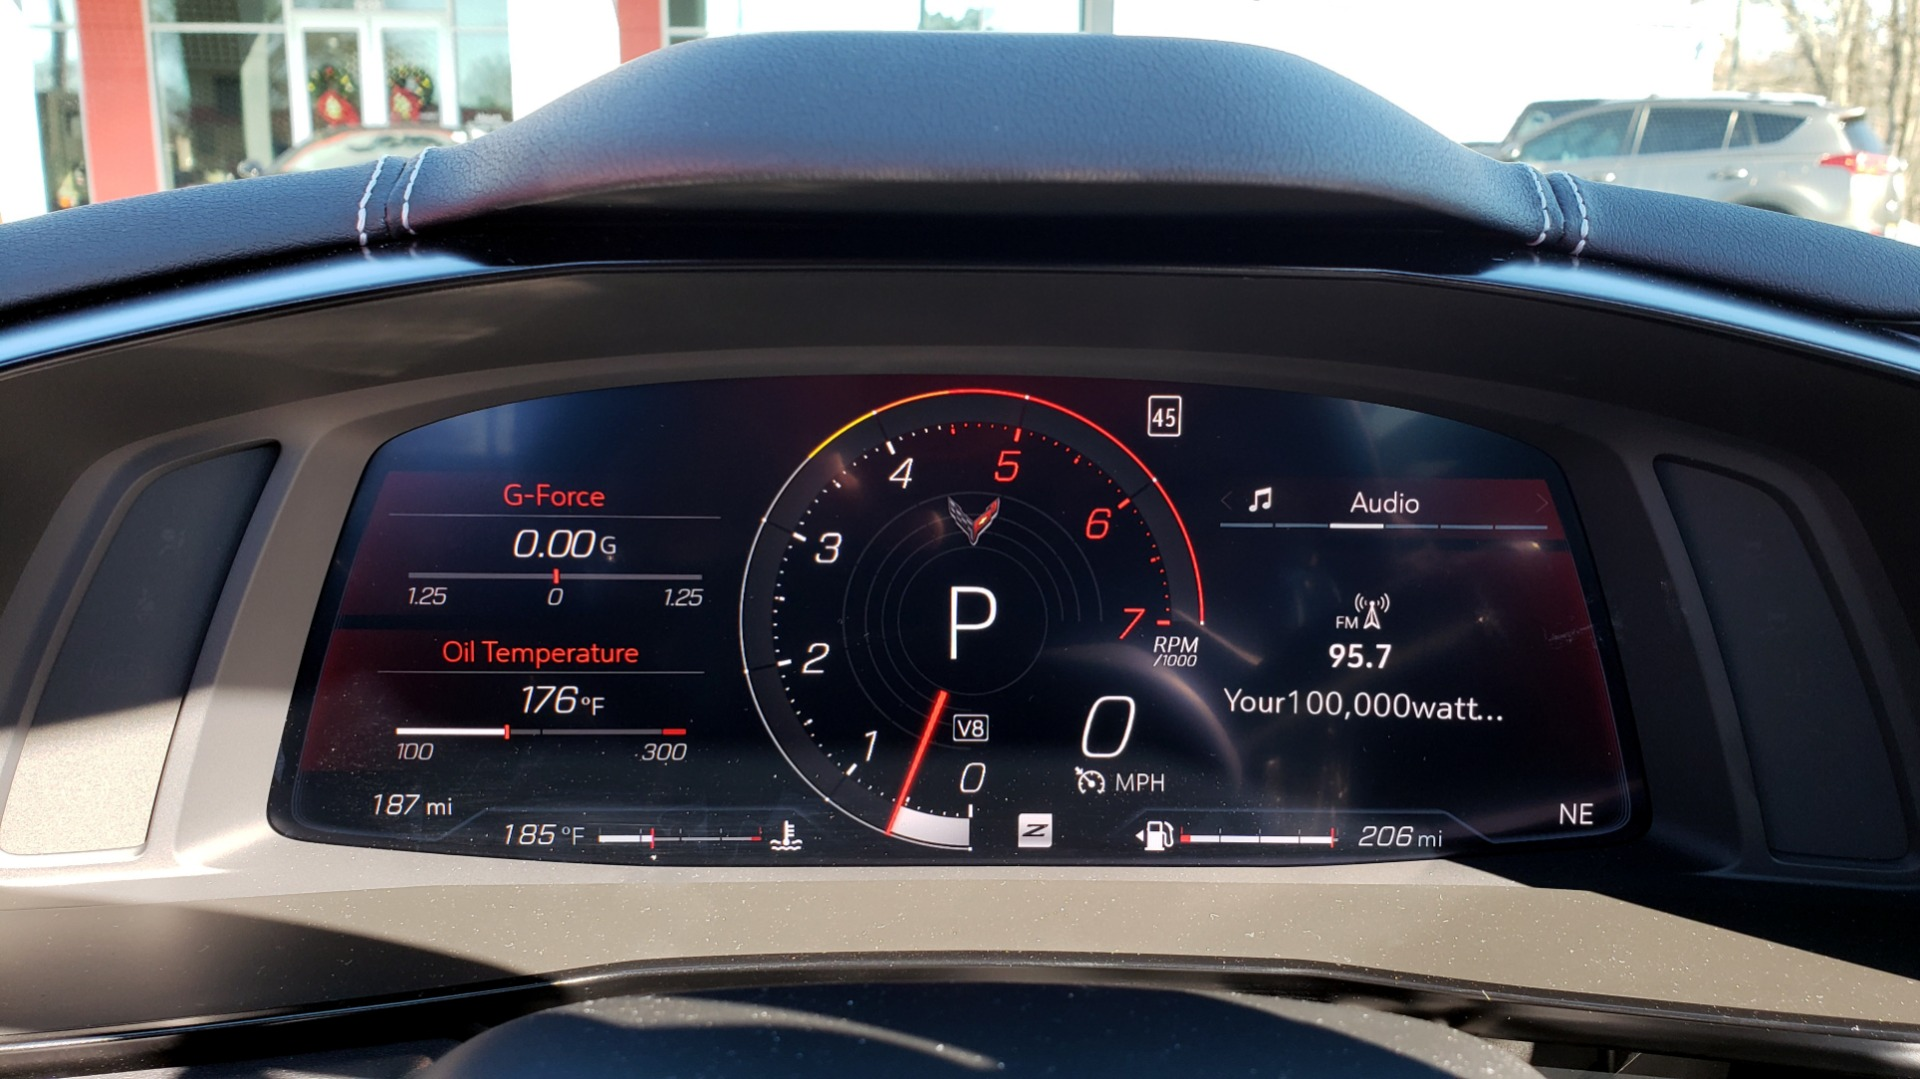 Used 2020 Chevrolet C8 CORVETTE STINGRAY 2LT COUPE / NAV / HUD / BOSE / GT2 SEATS / FRONT LIFT / REARVIEW for sale Sold at Formula Imports in Charlotte NC 28227 66